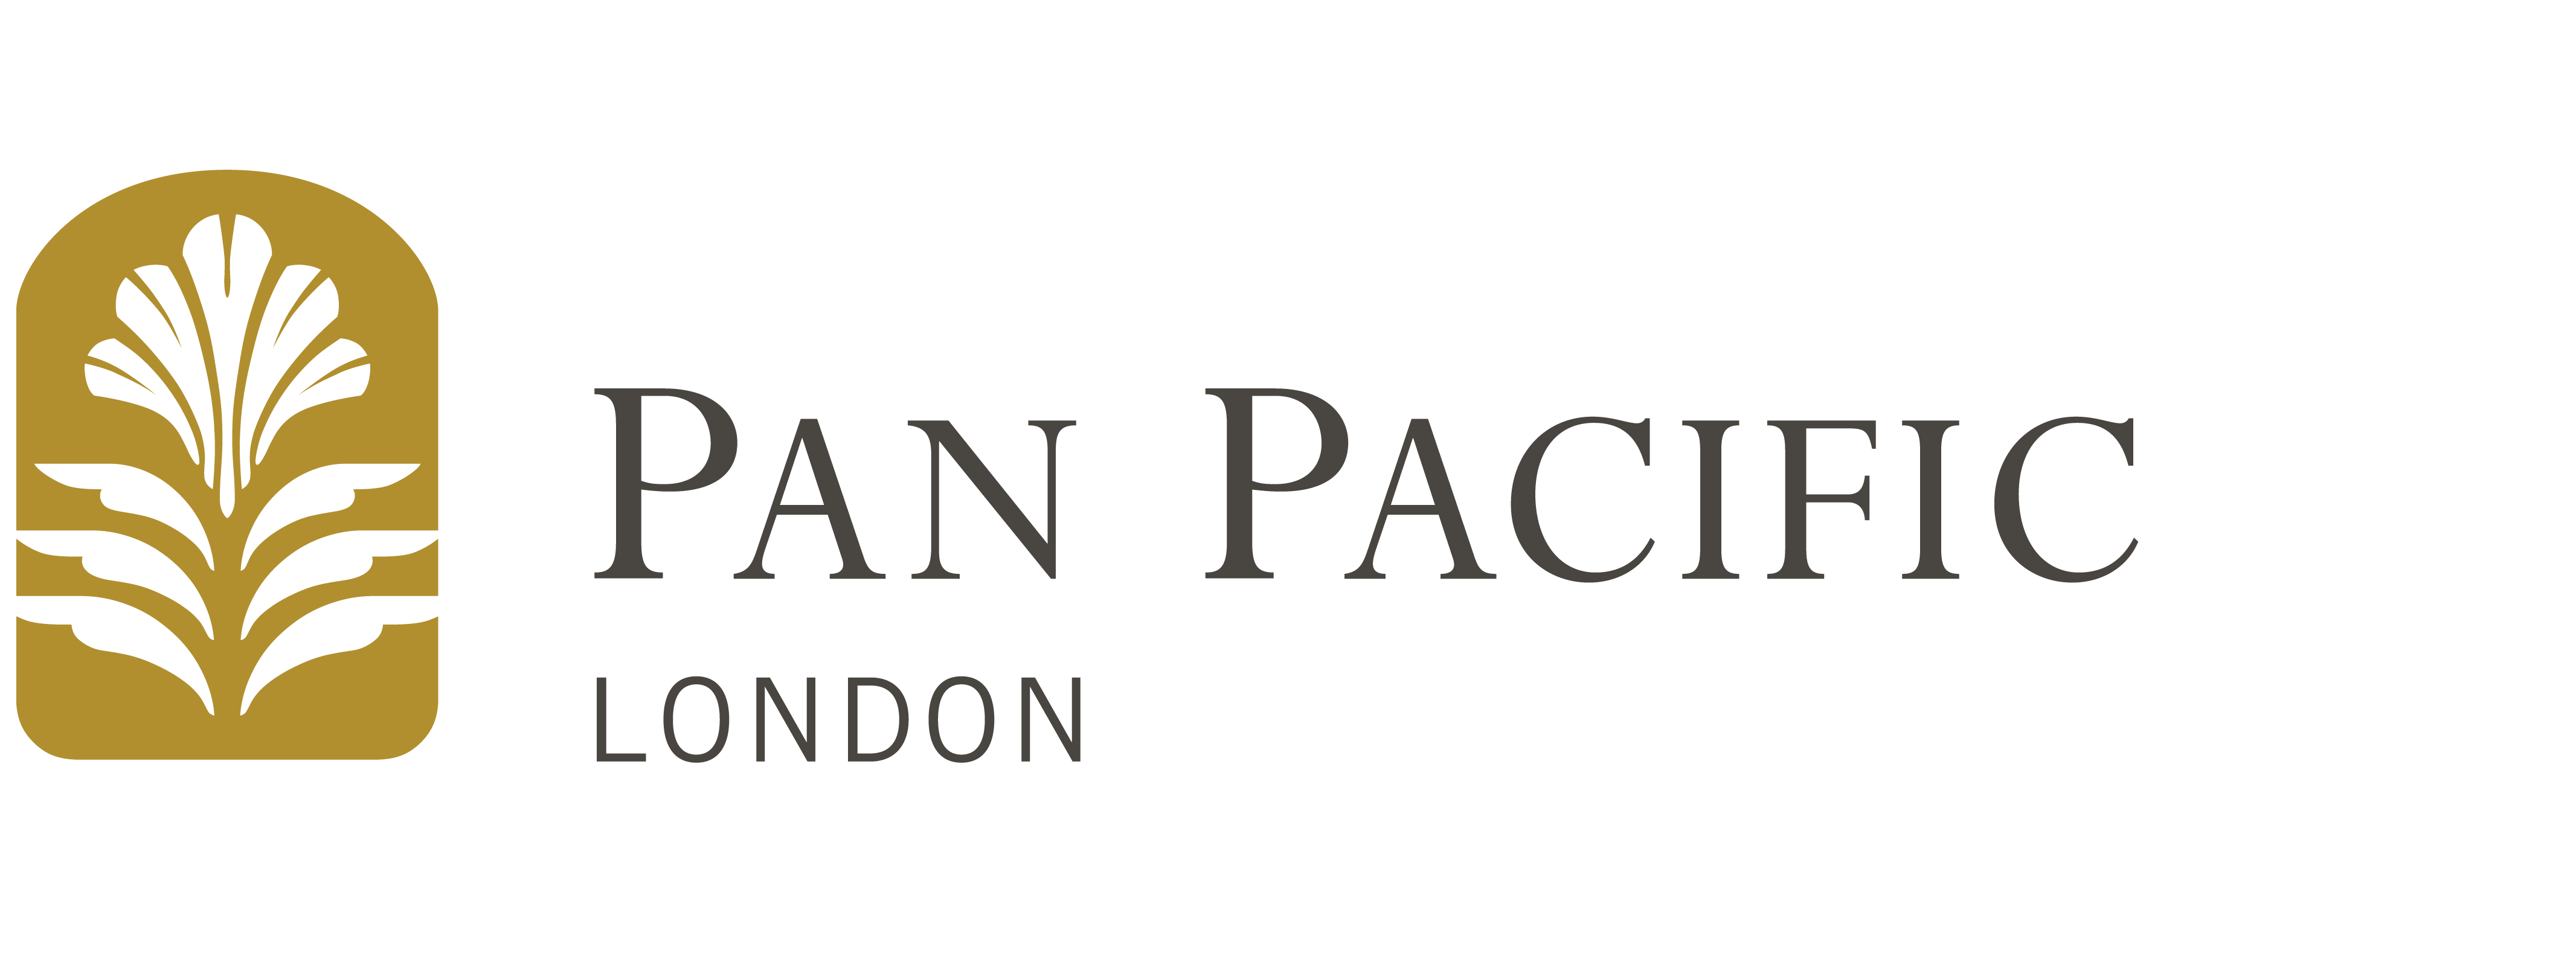 Pan Pacific London